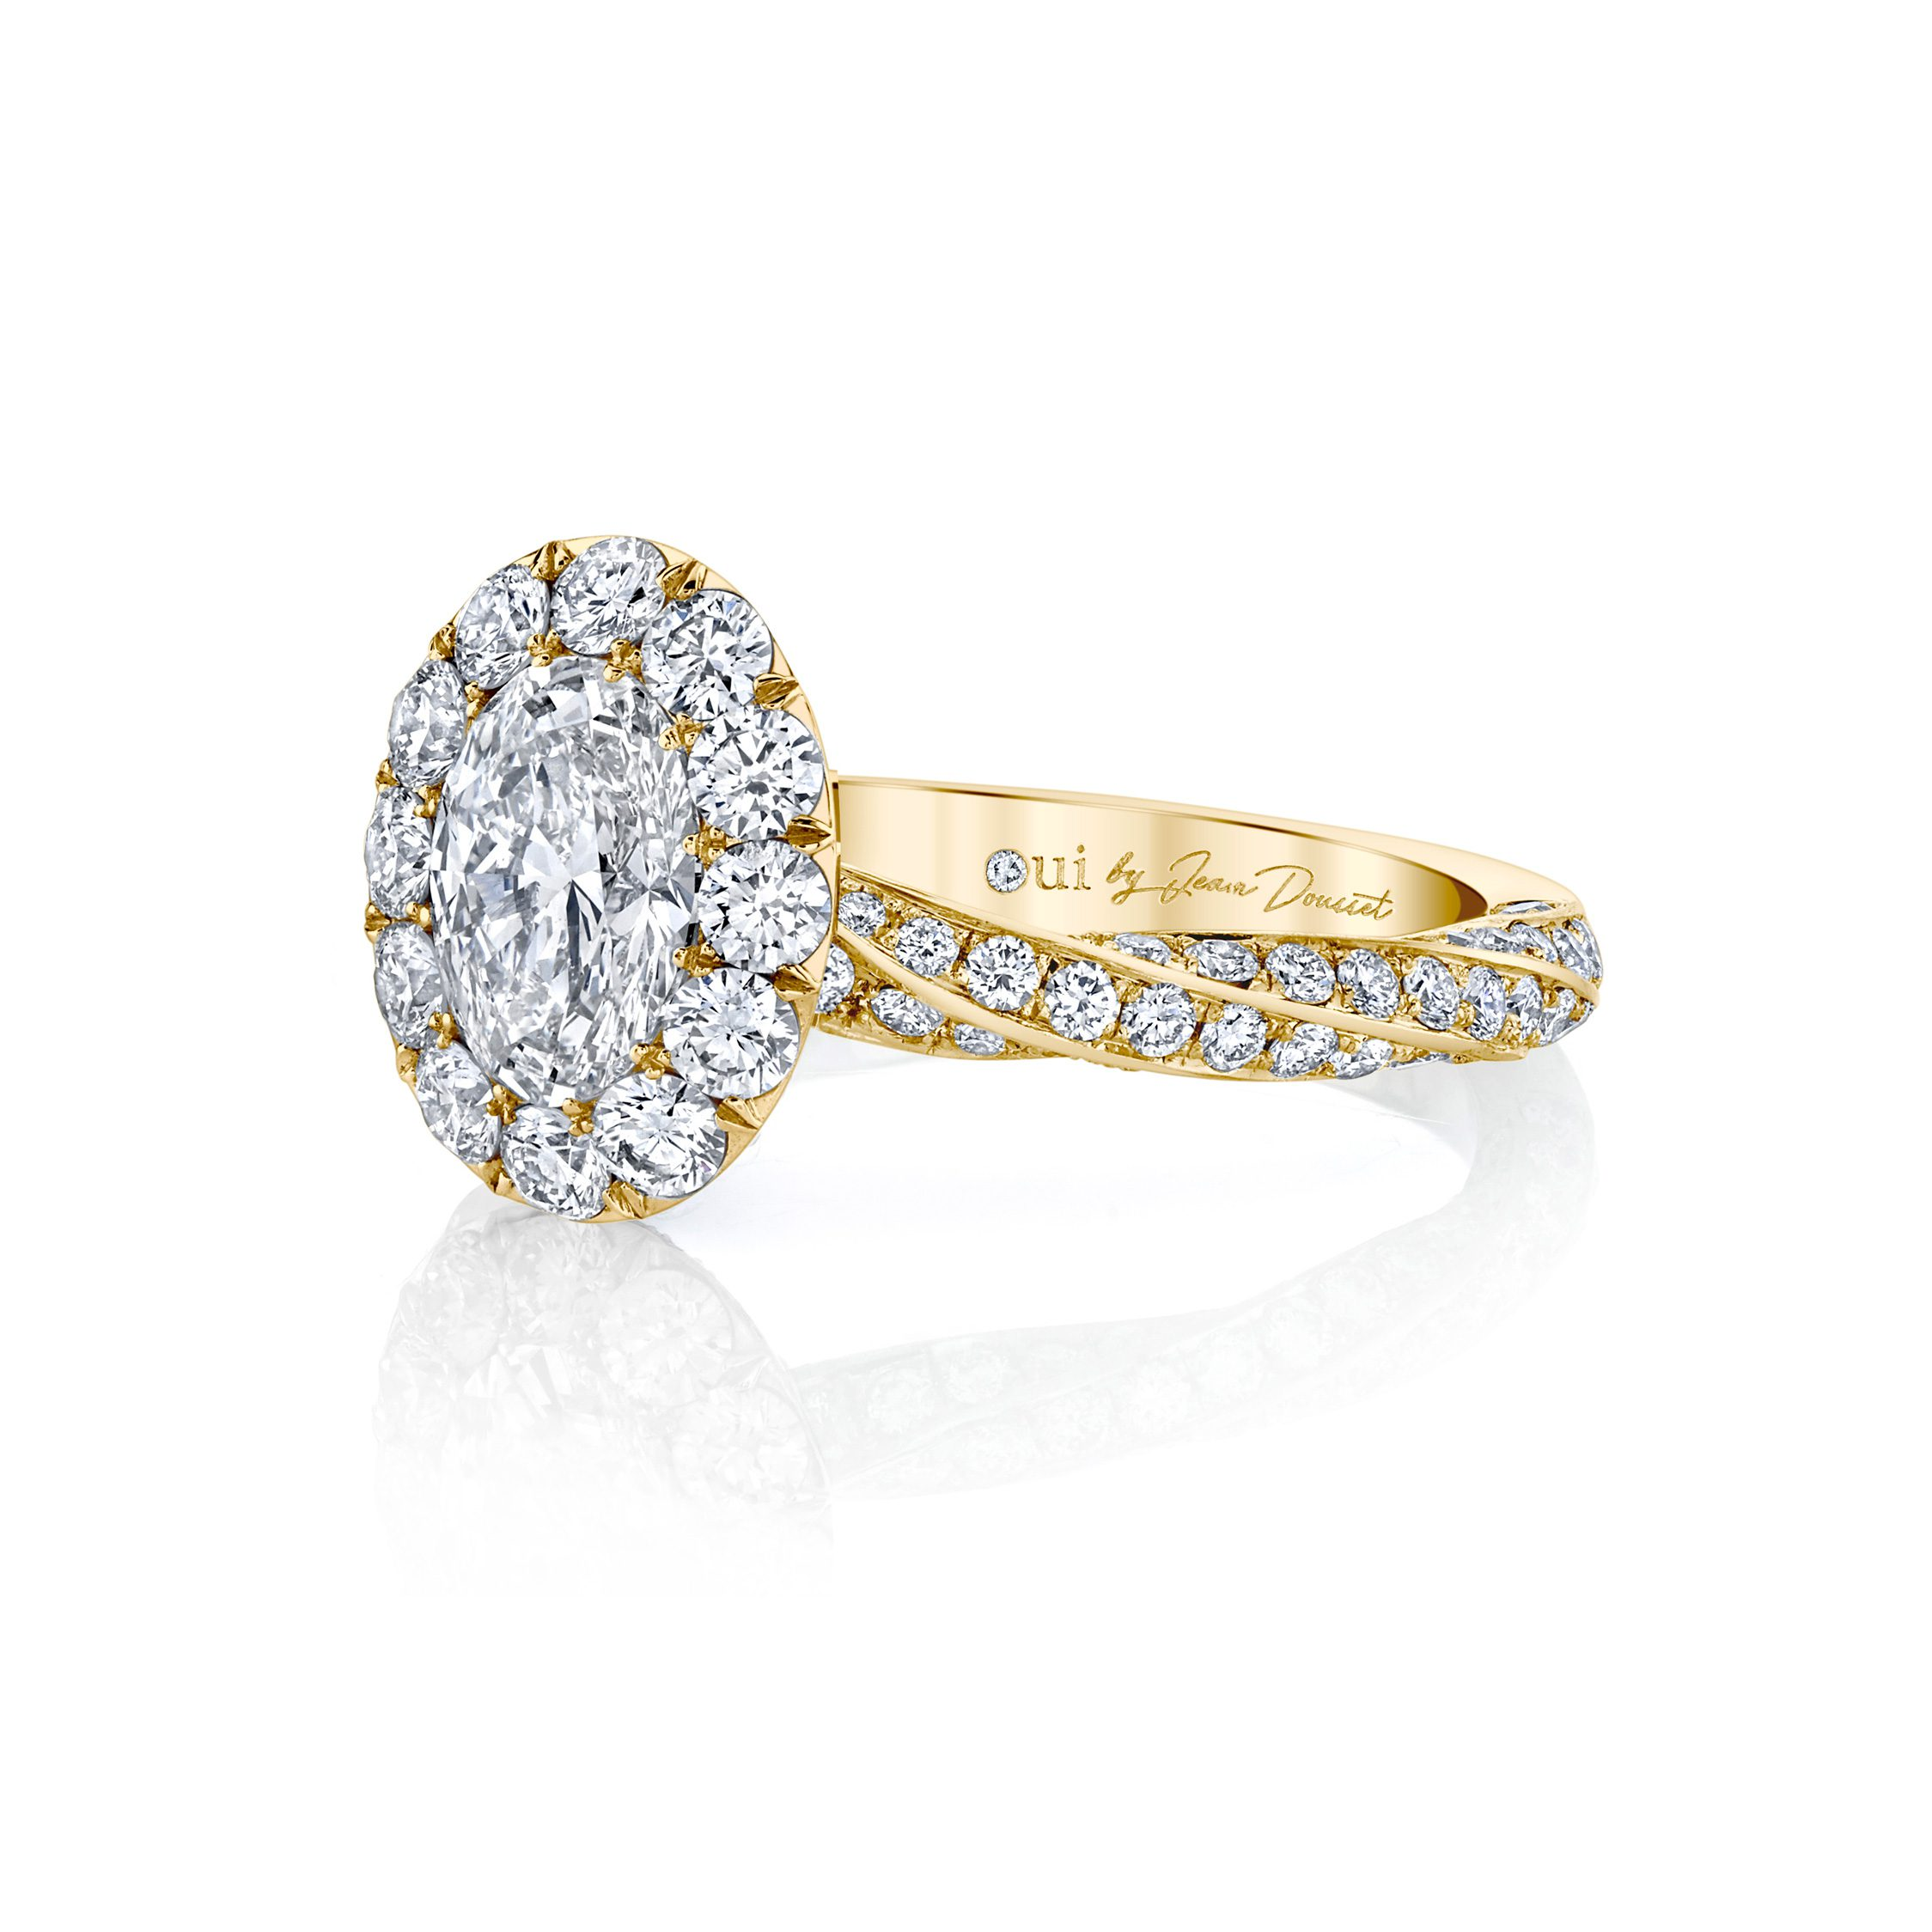 Camille Floating Oval Seamless Solitaire® Engagement Ring with diamond pavé in 18k Yellow Gold Side View by Oui by Jean Dousset